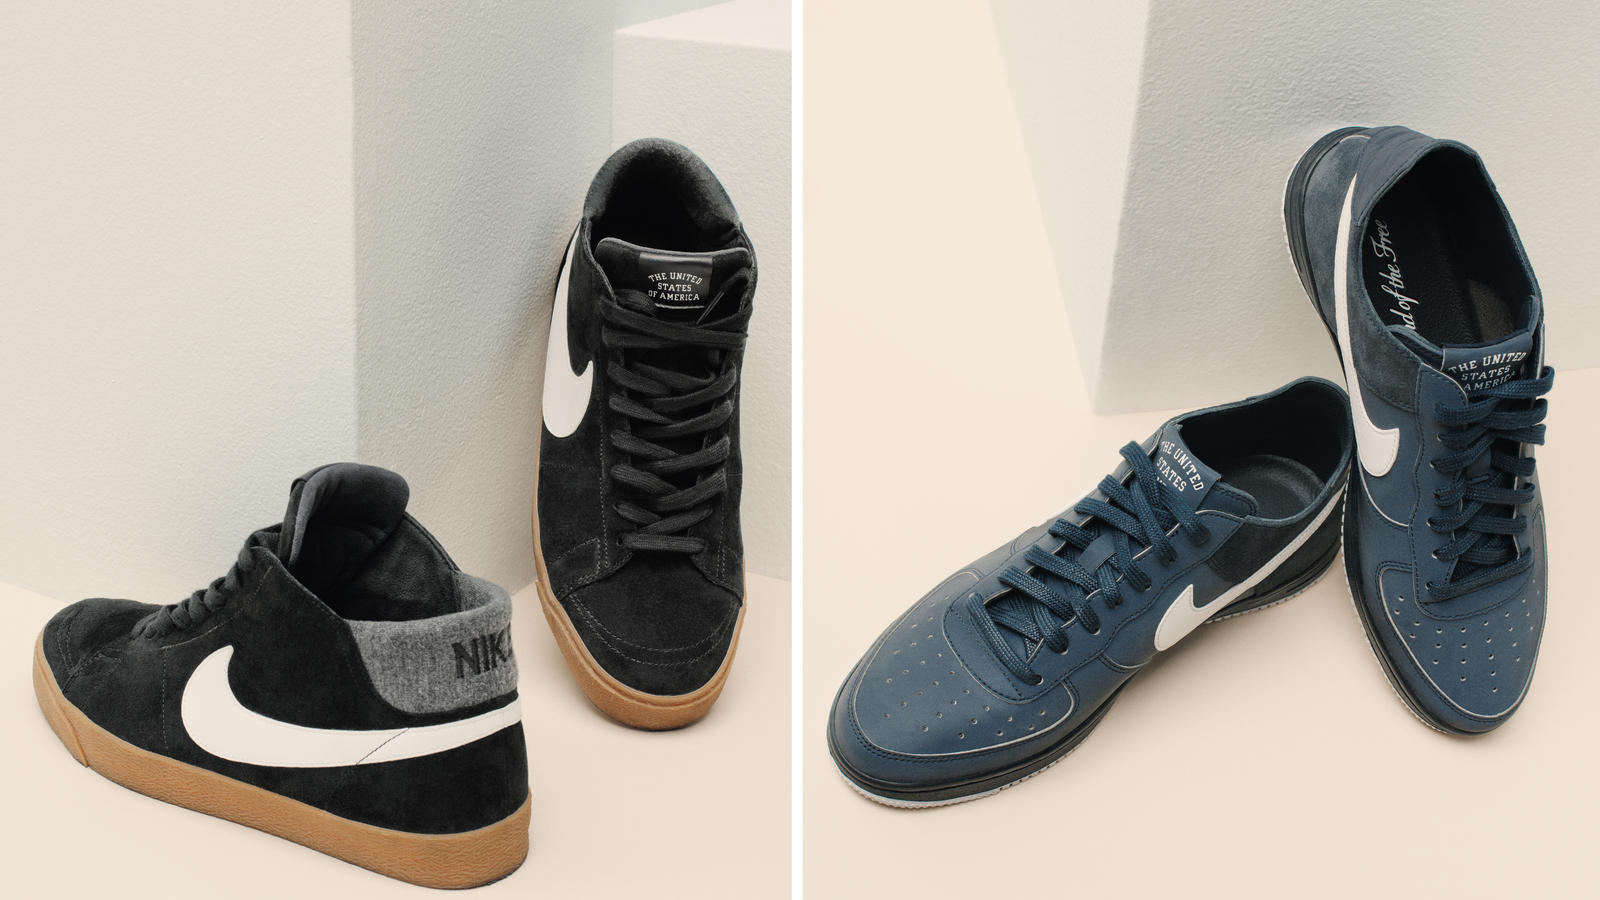 Nike-Village-Wear-Composite-3